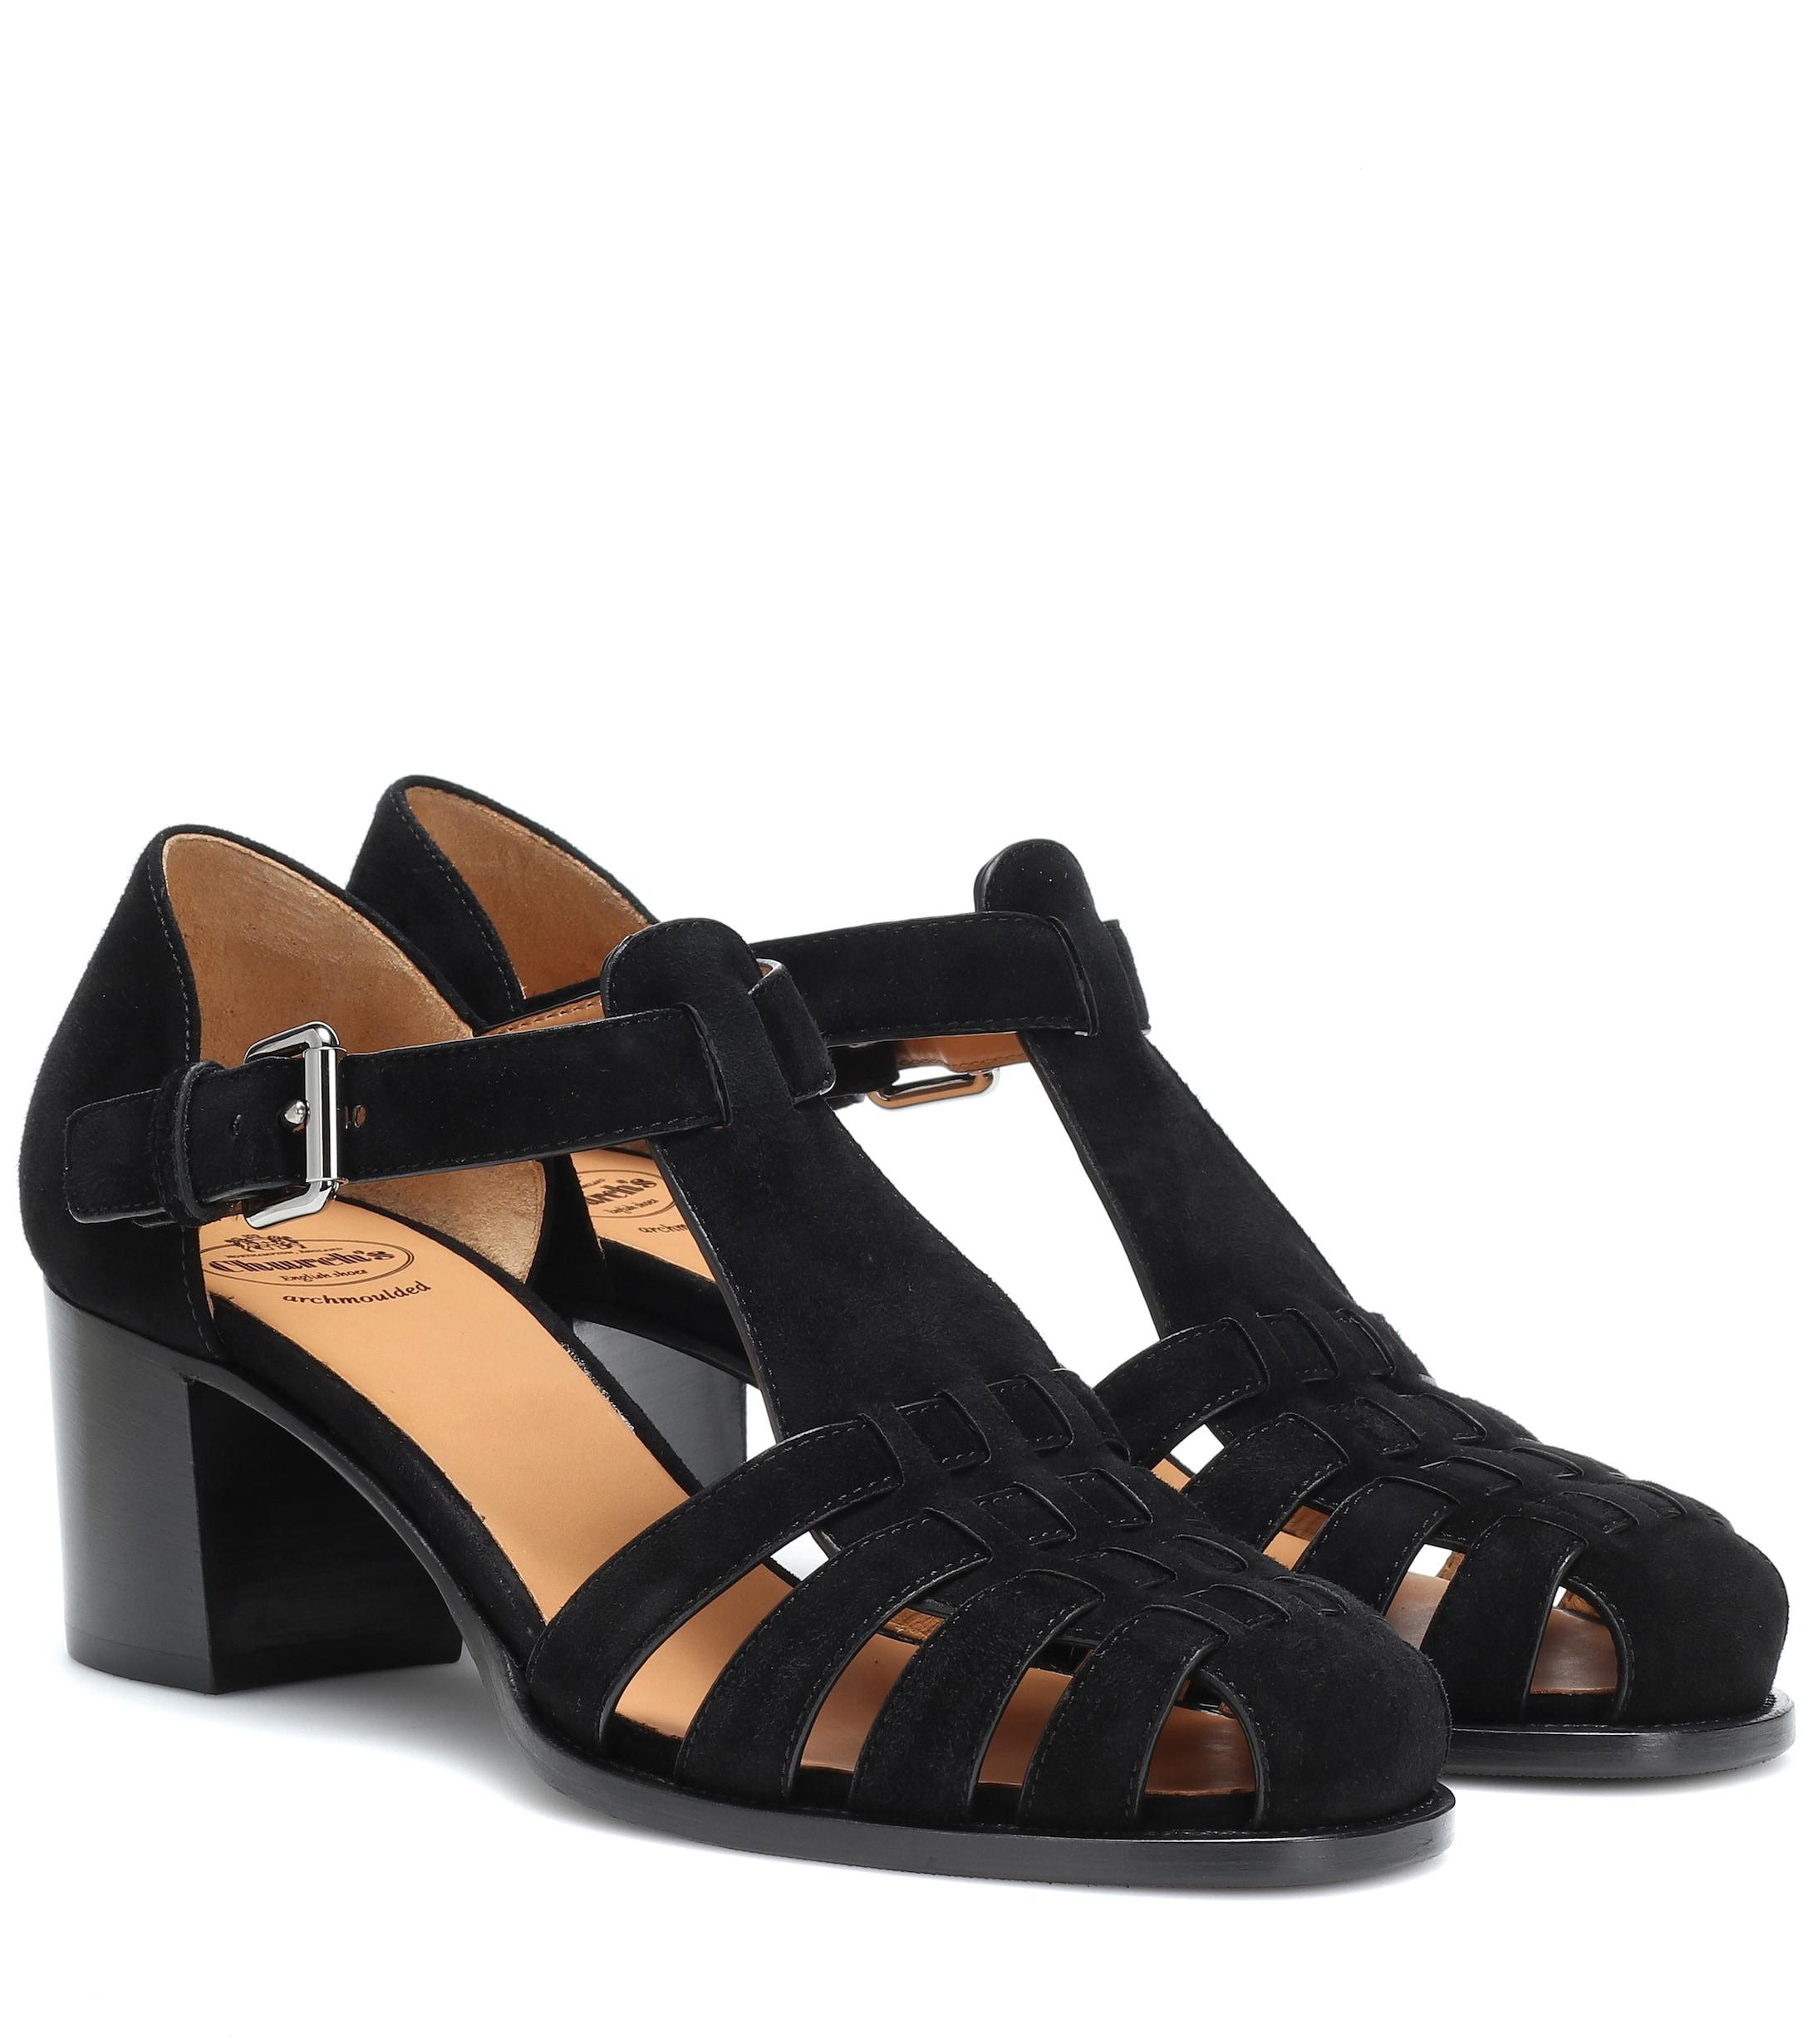 5e4253f748f7 Church s Kelsey Suede Sandals in Black - Lyst